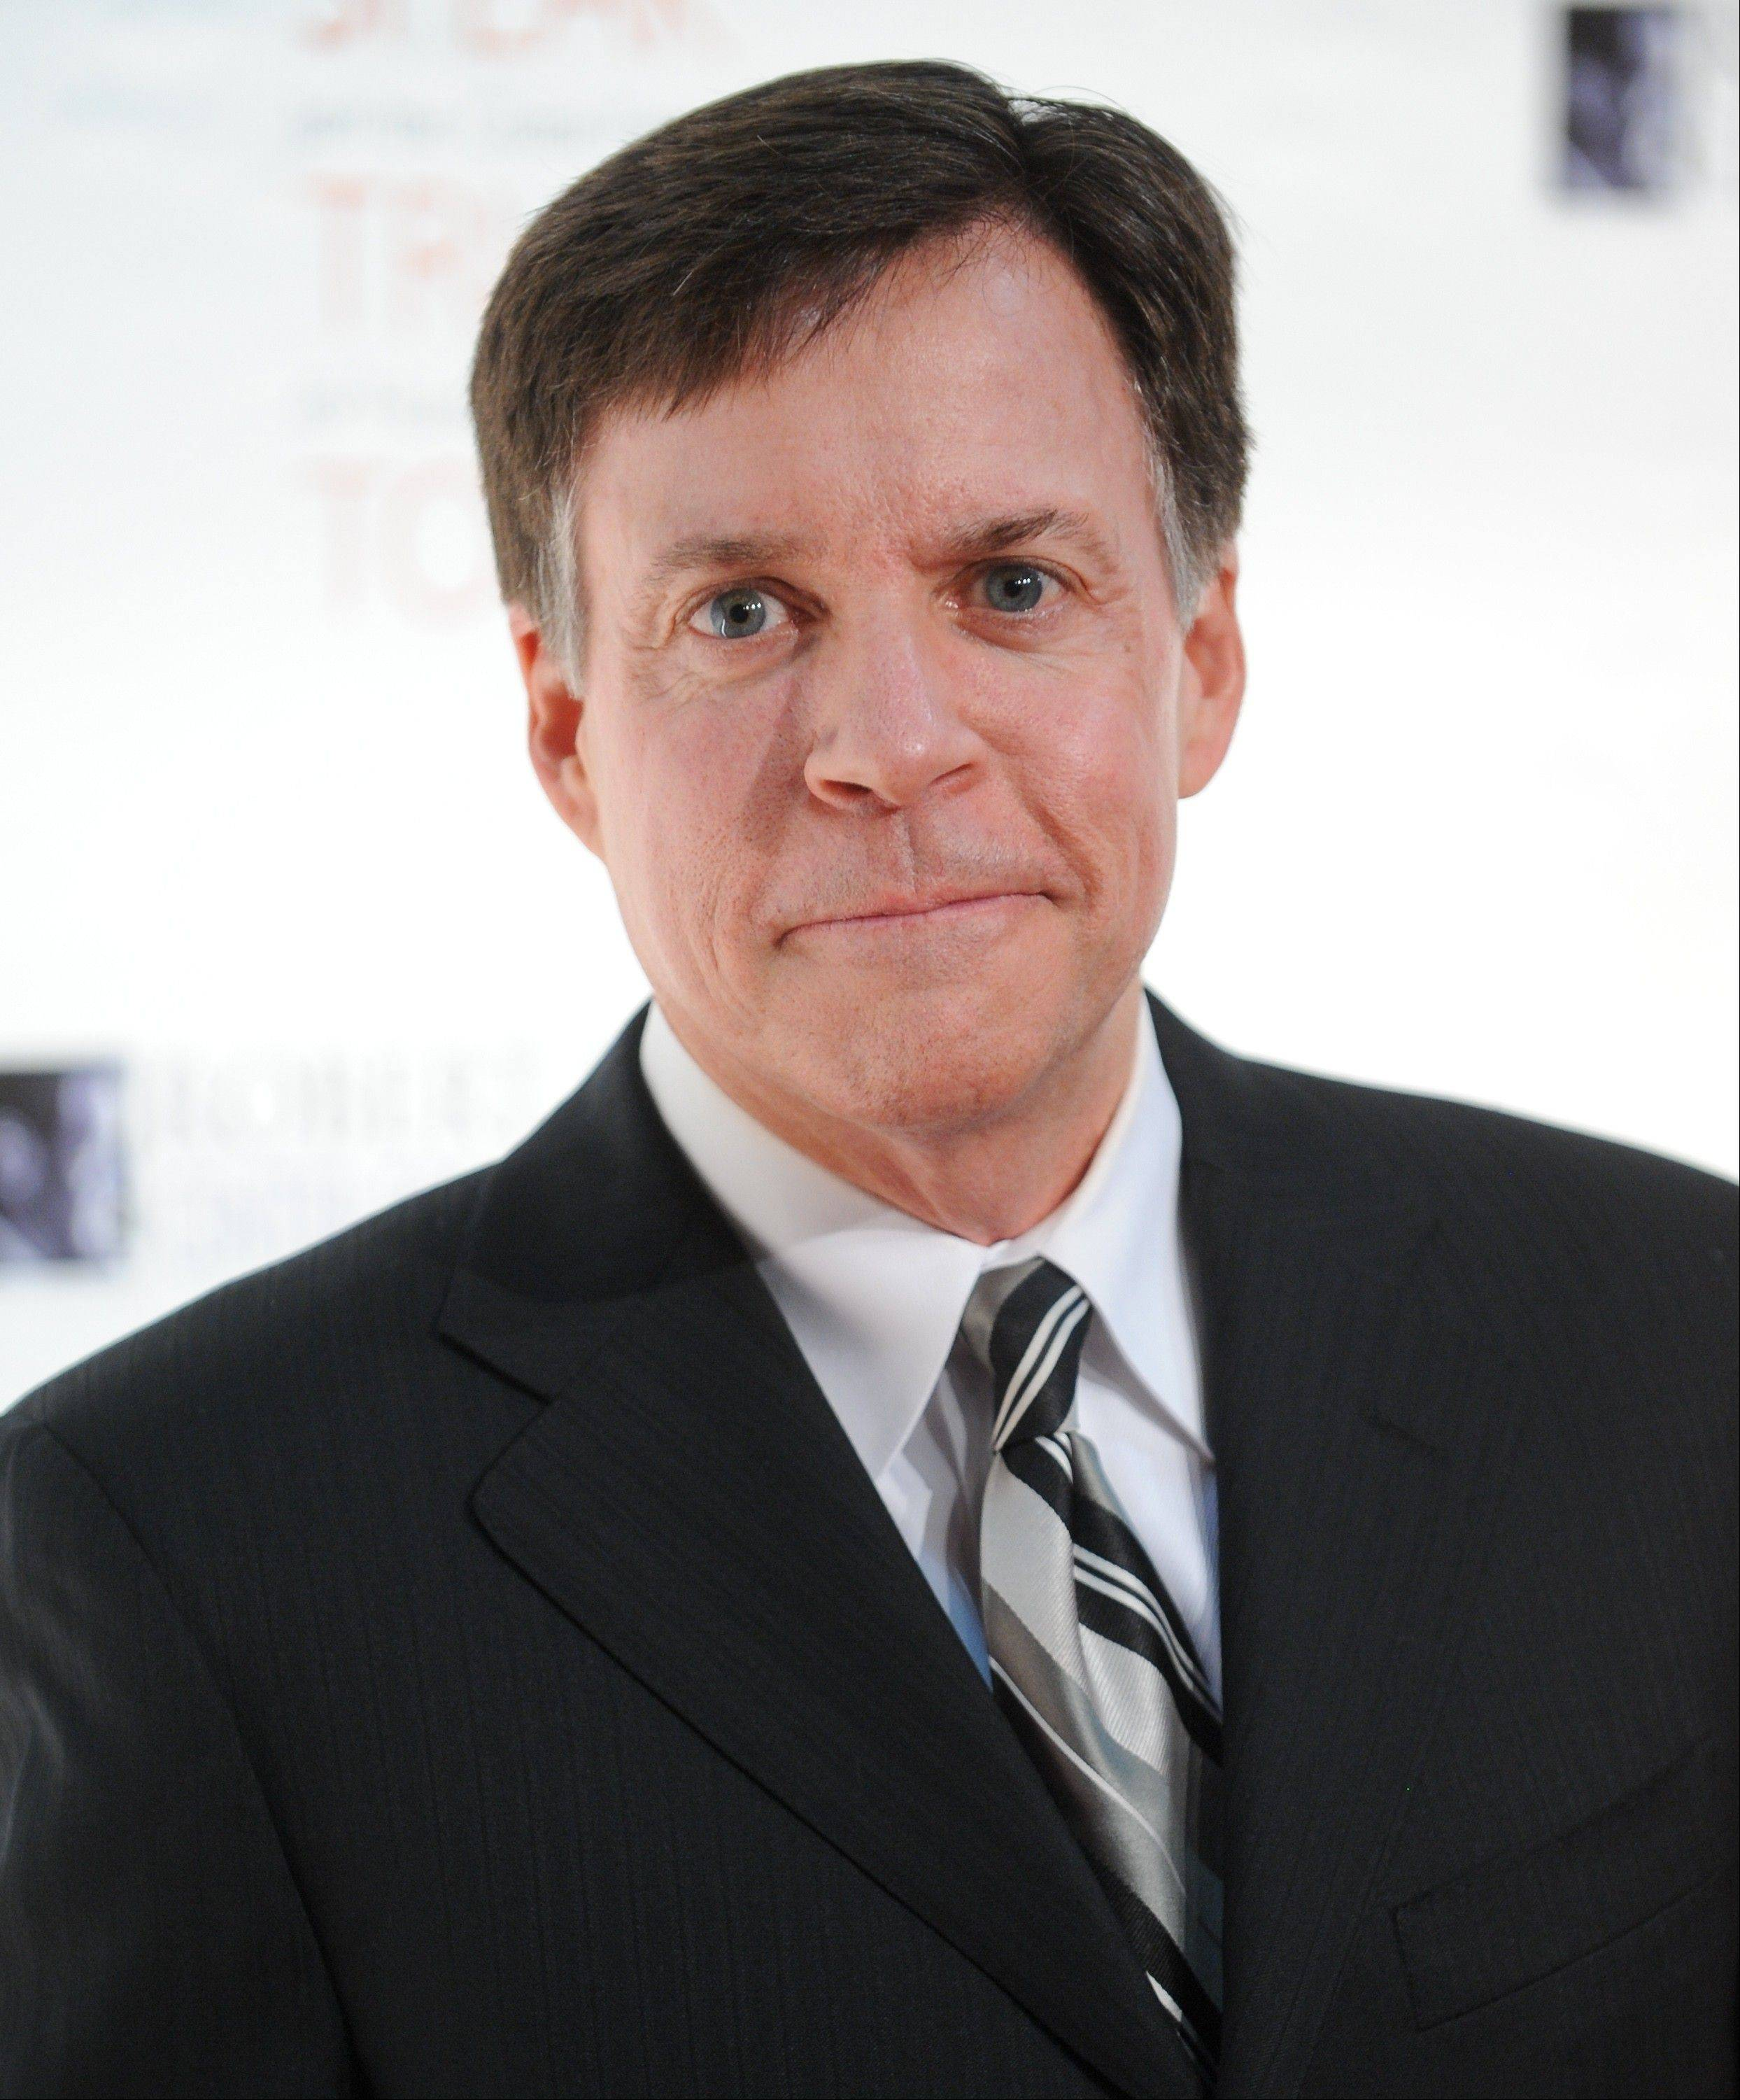 Sports commentator Bob Costas� �Sunday Night Football� halftime commentary supporting gun control sparked a Fox News Channel debate Monday on whether NBC should fire him.